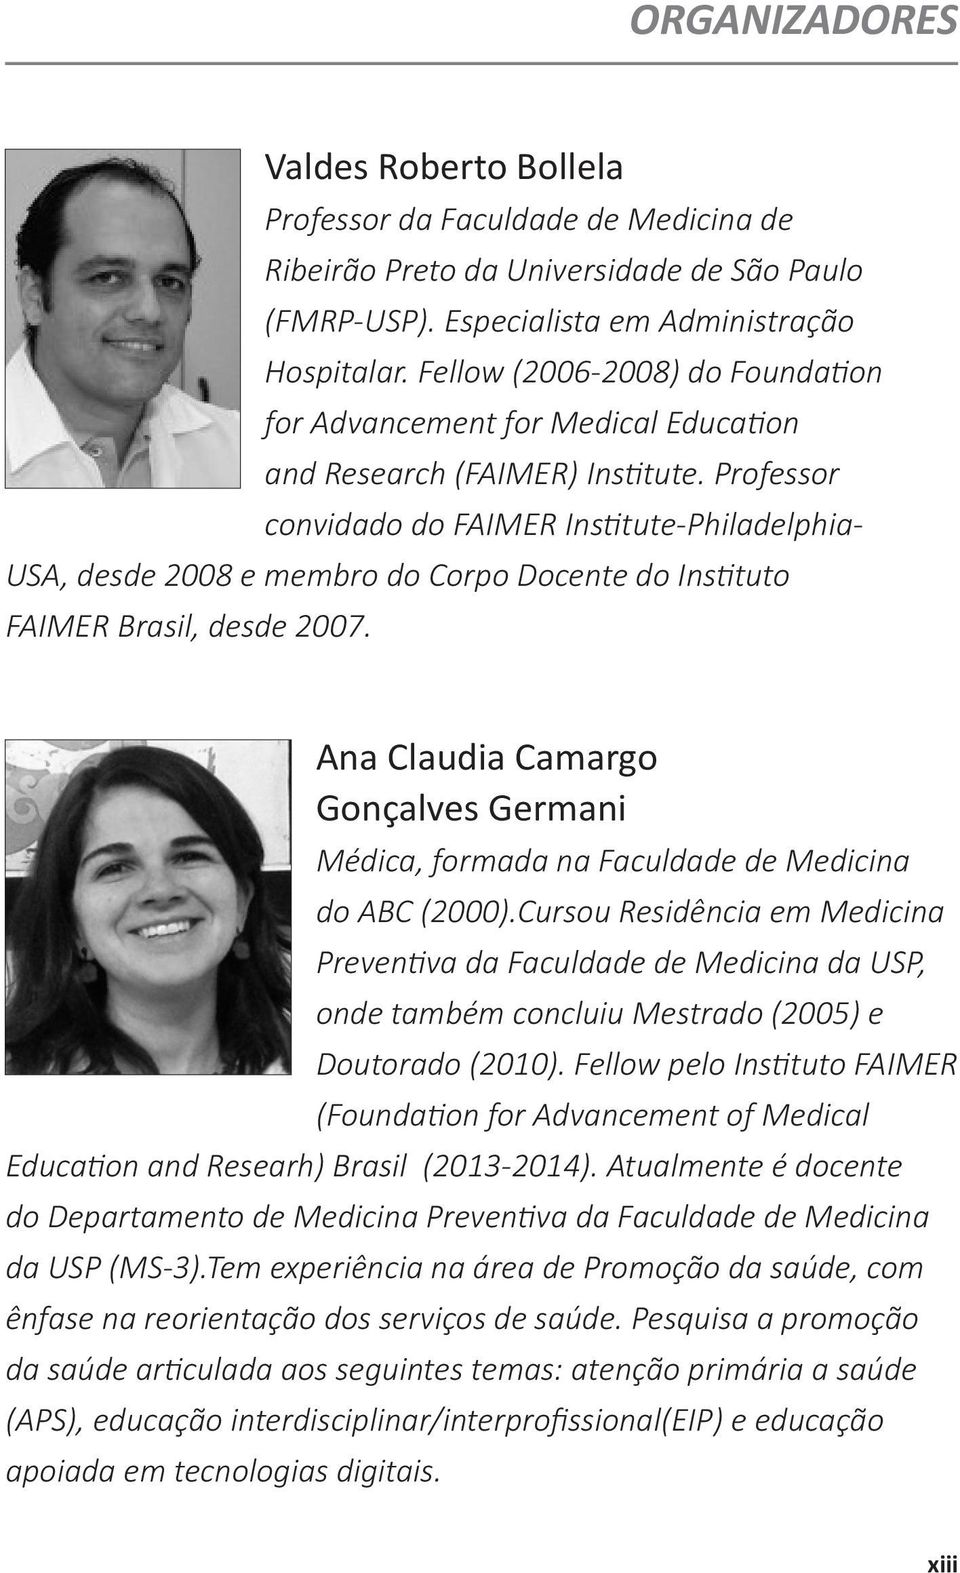 Professor convidado do FAIMER Institute-Philadelphia- USA, desde 2008 e membro do Corpo Docente do Instituto FAIMER Brasil, desde 2007.